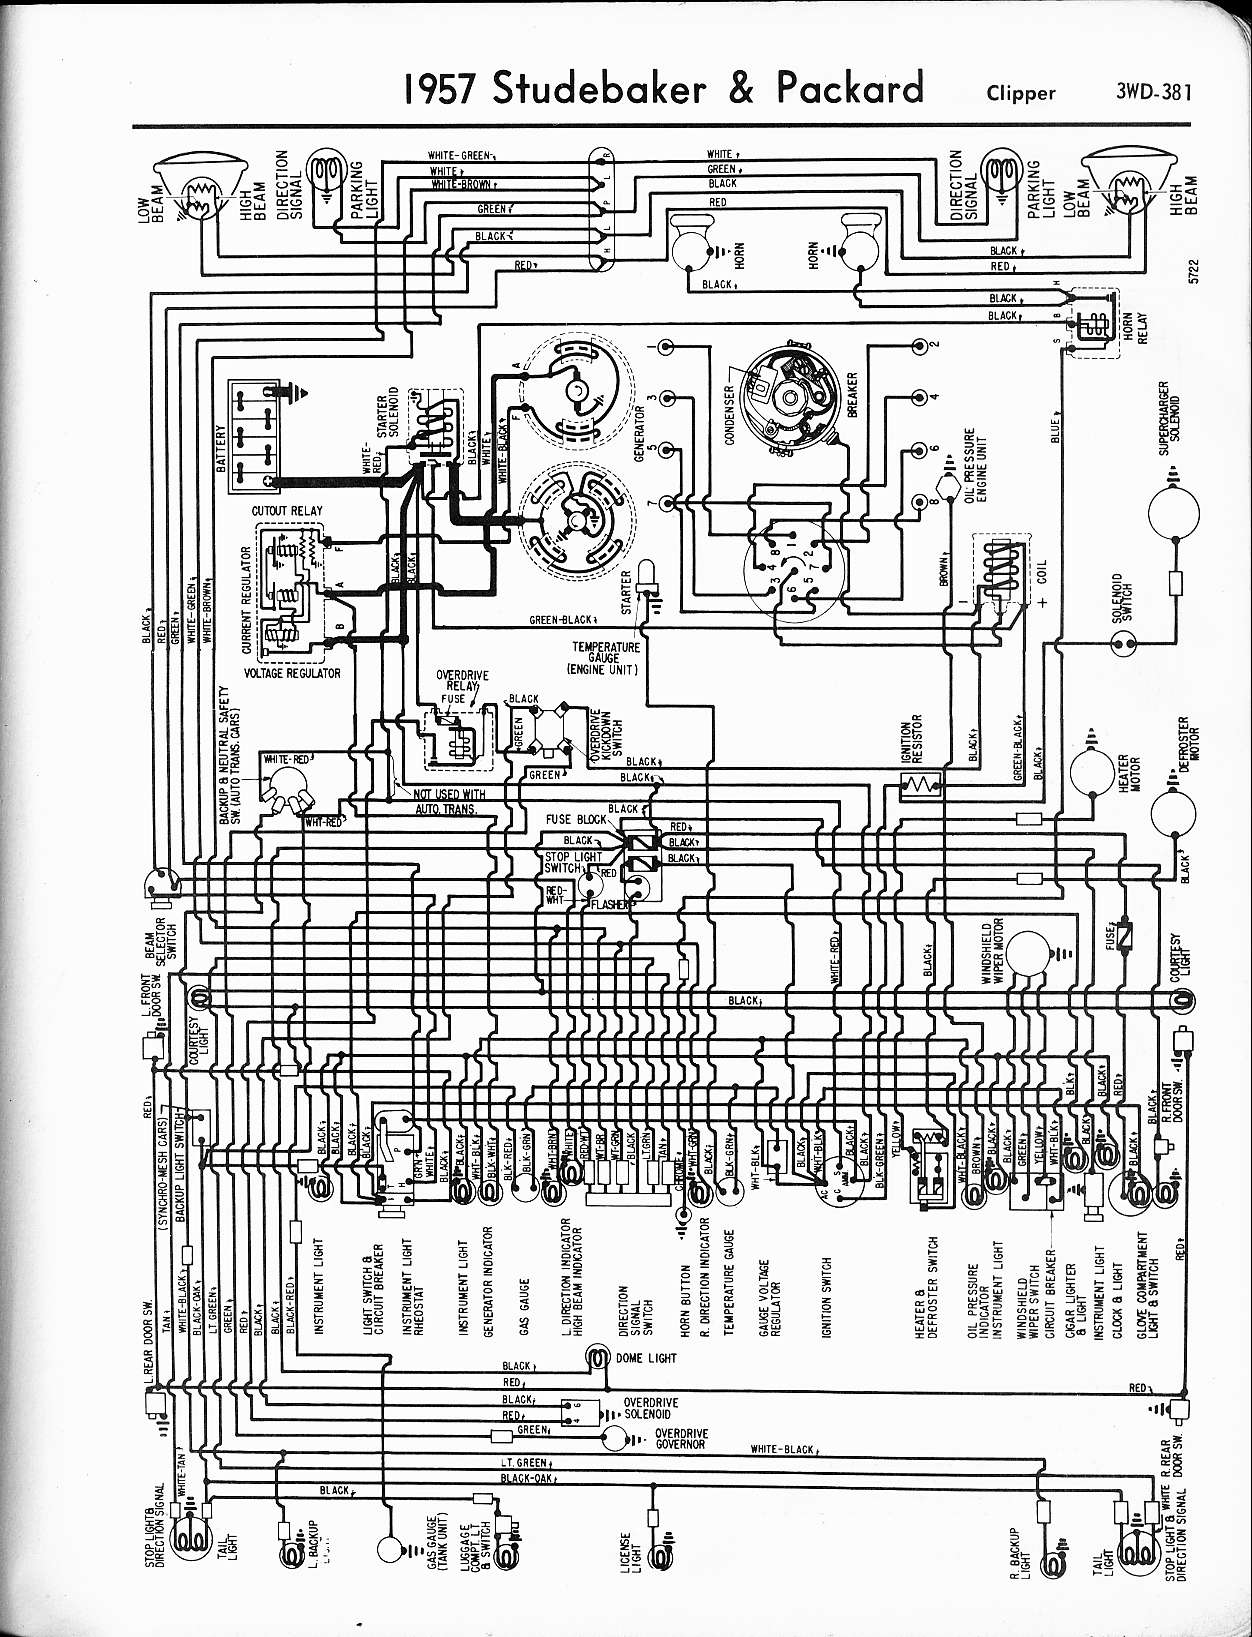 1949 packard wiring diagram easy to read wiring diagrams